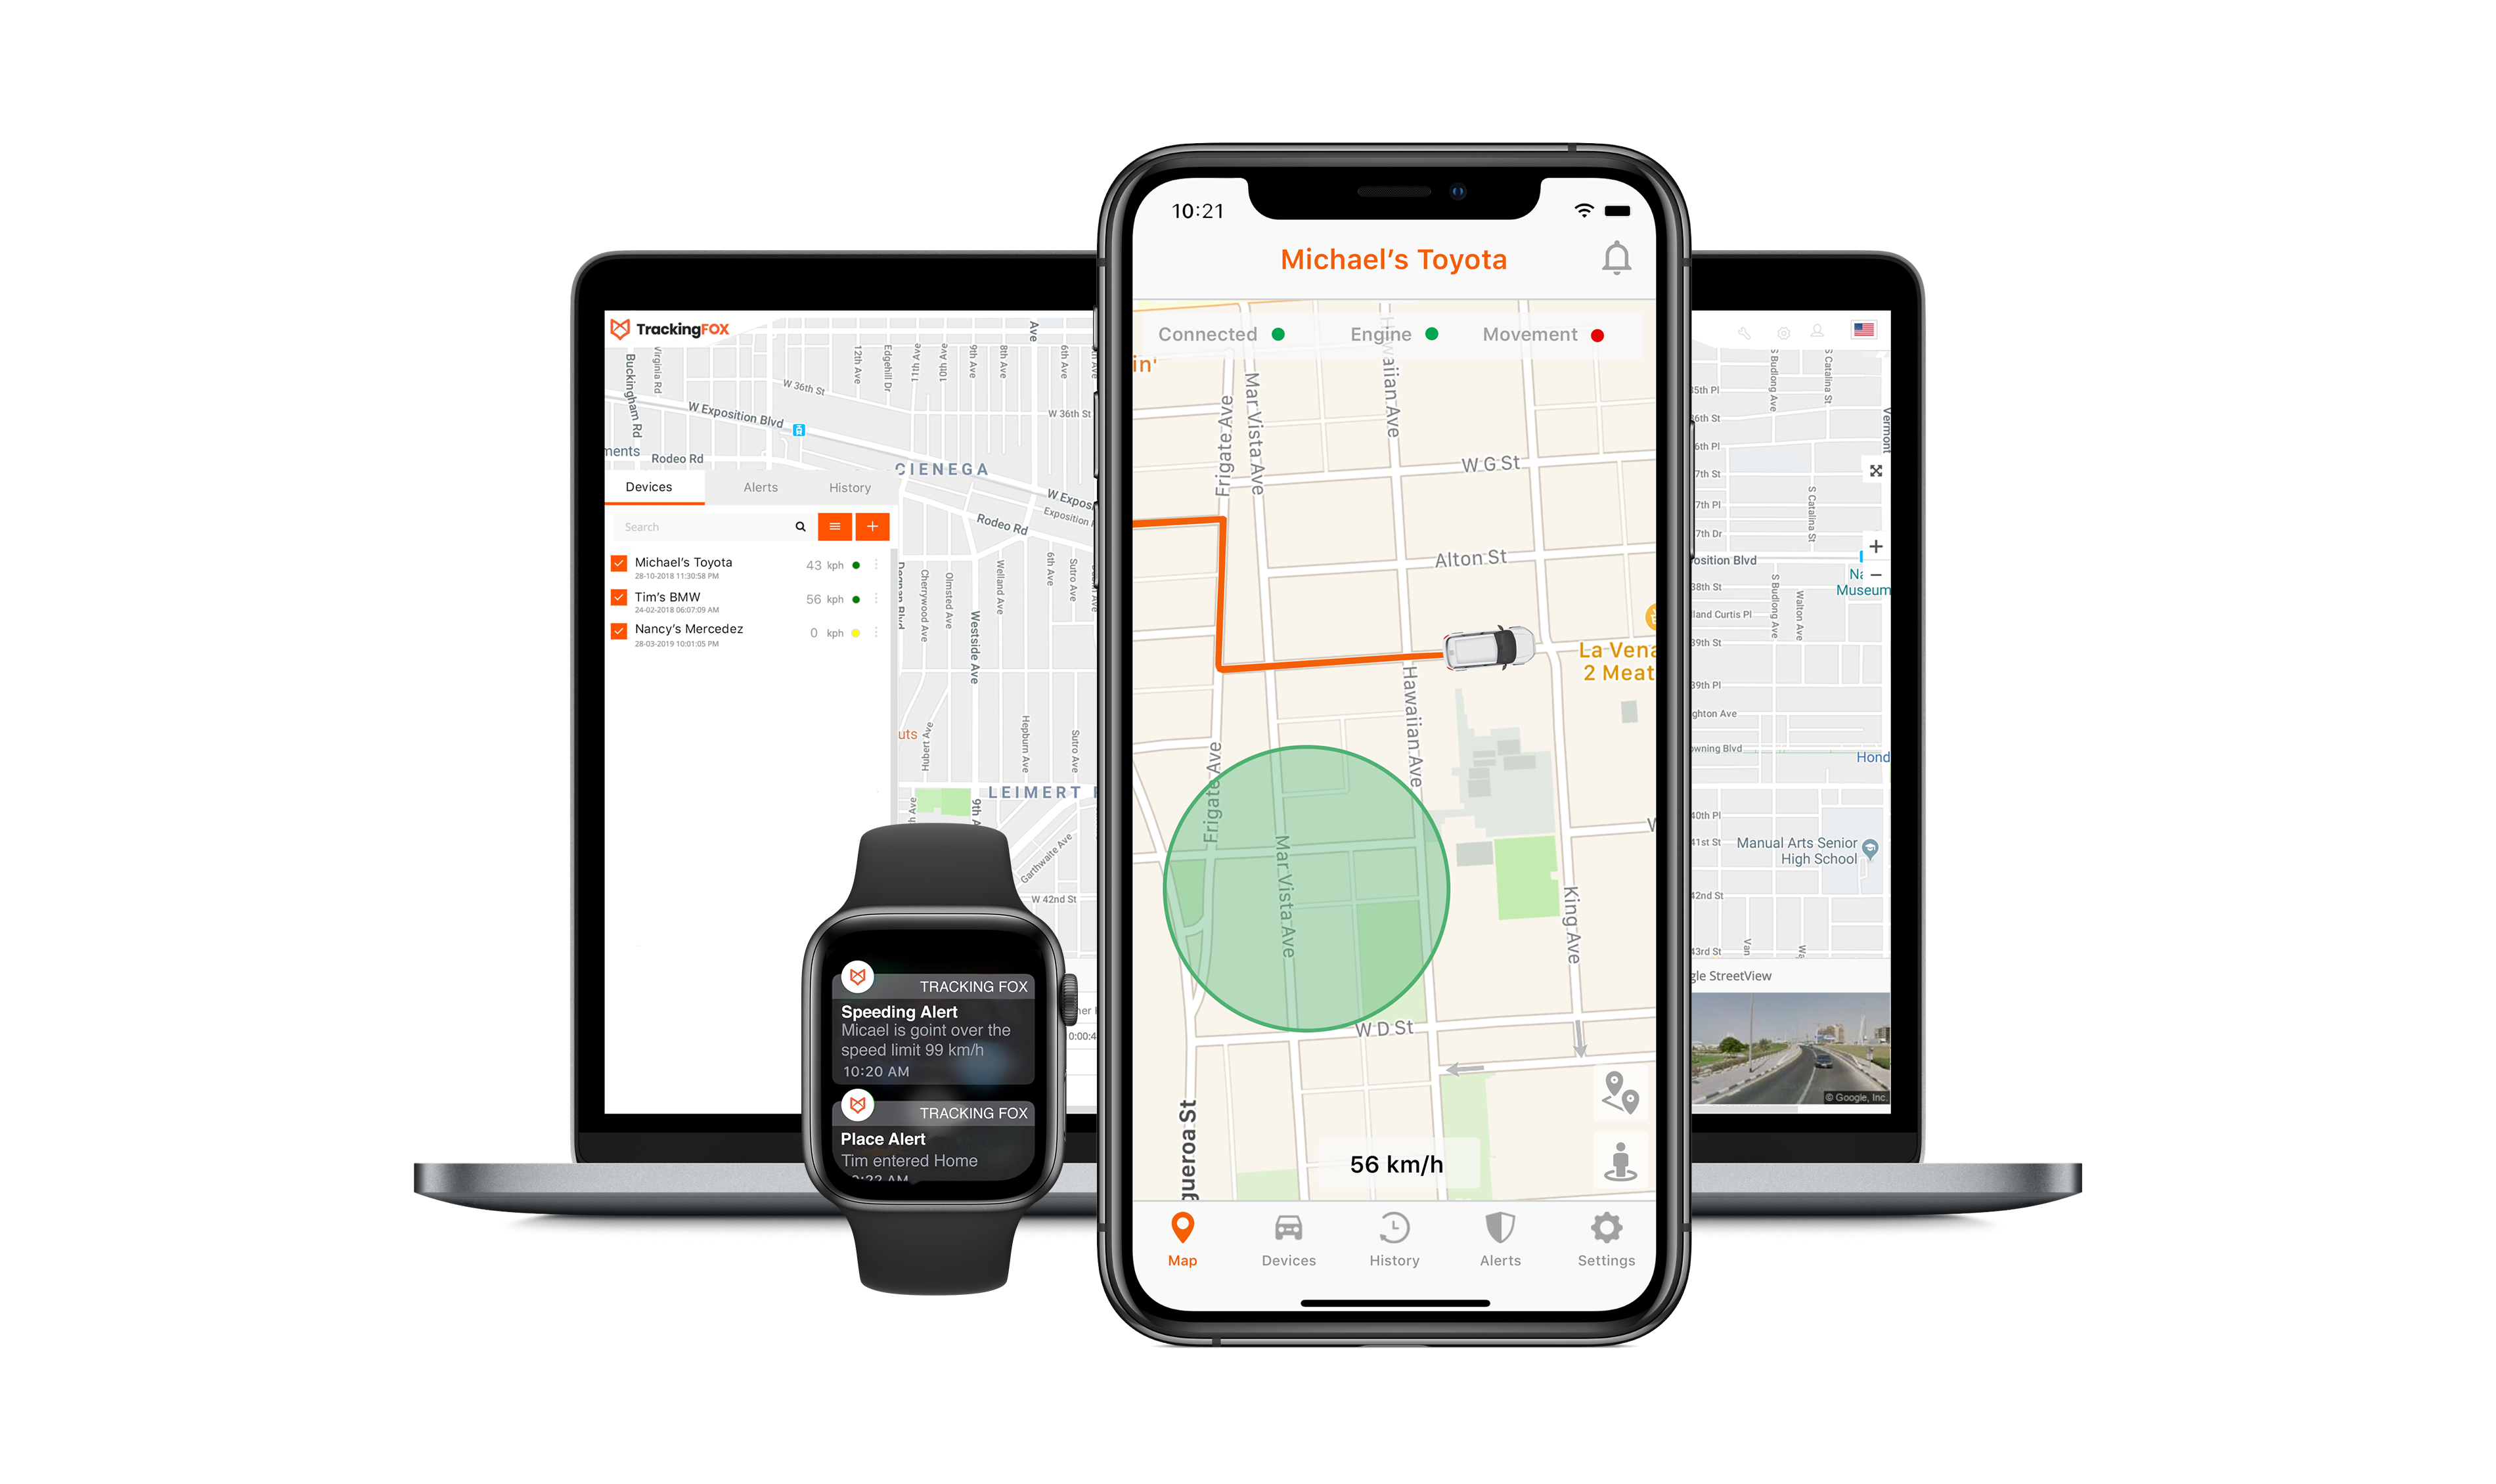 Vehicle tracker system for your car. Try now! | TrackingFox